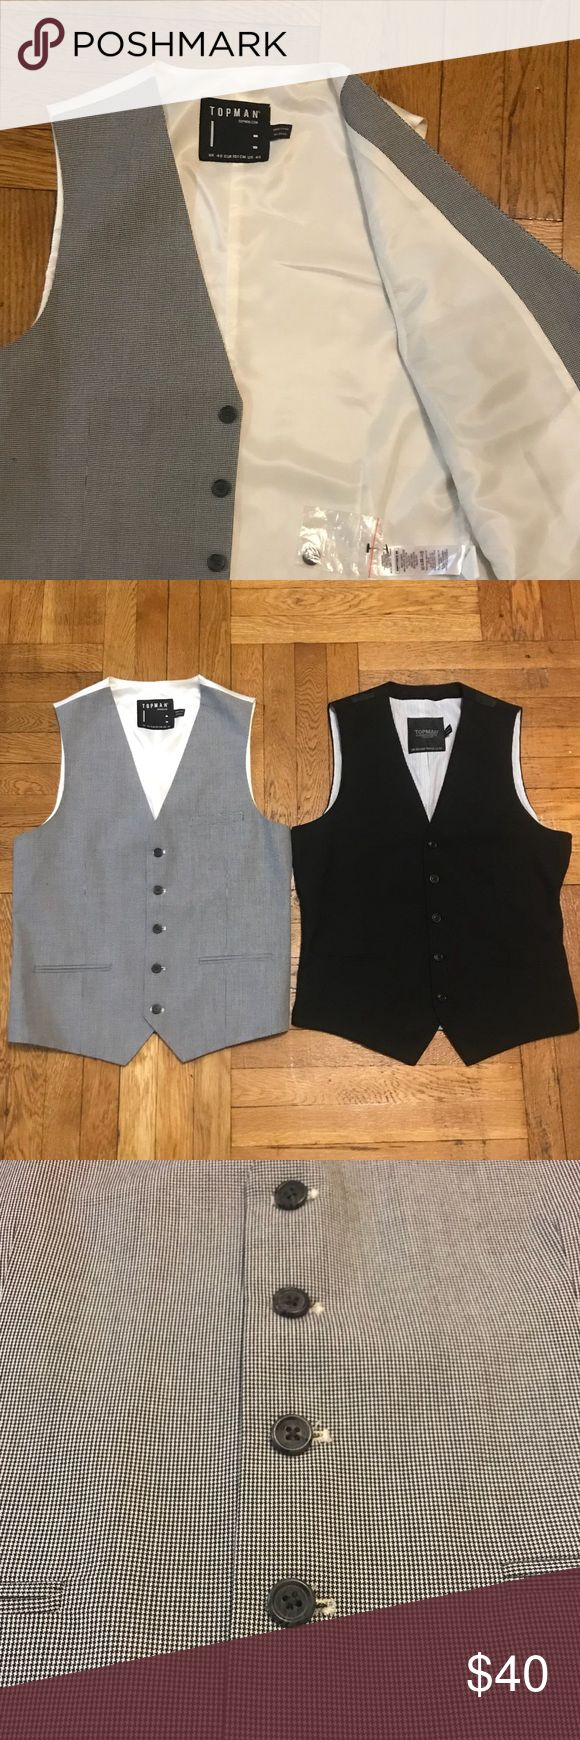 ✨SALE BUNDLE✨ TOPMAN Vest 40 One new. Excellent condition Topman Suits & Blazers Vests